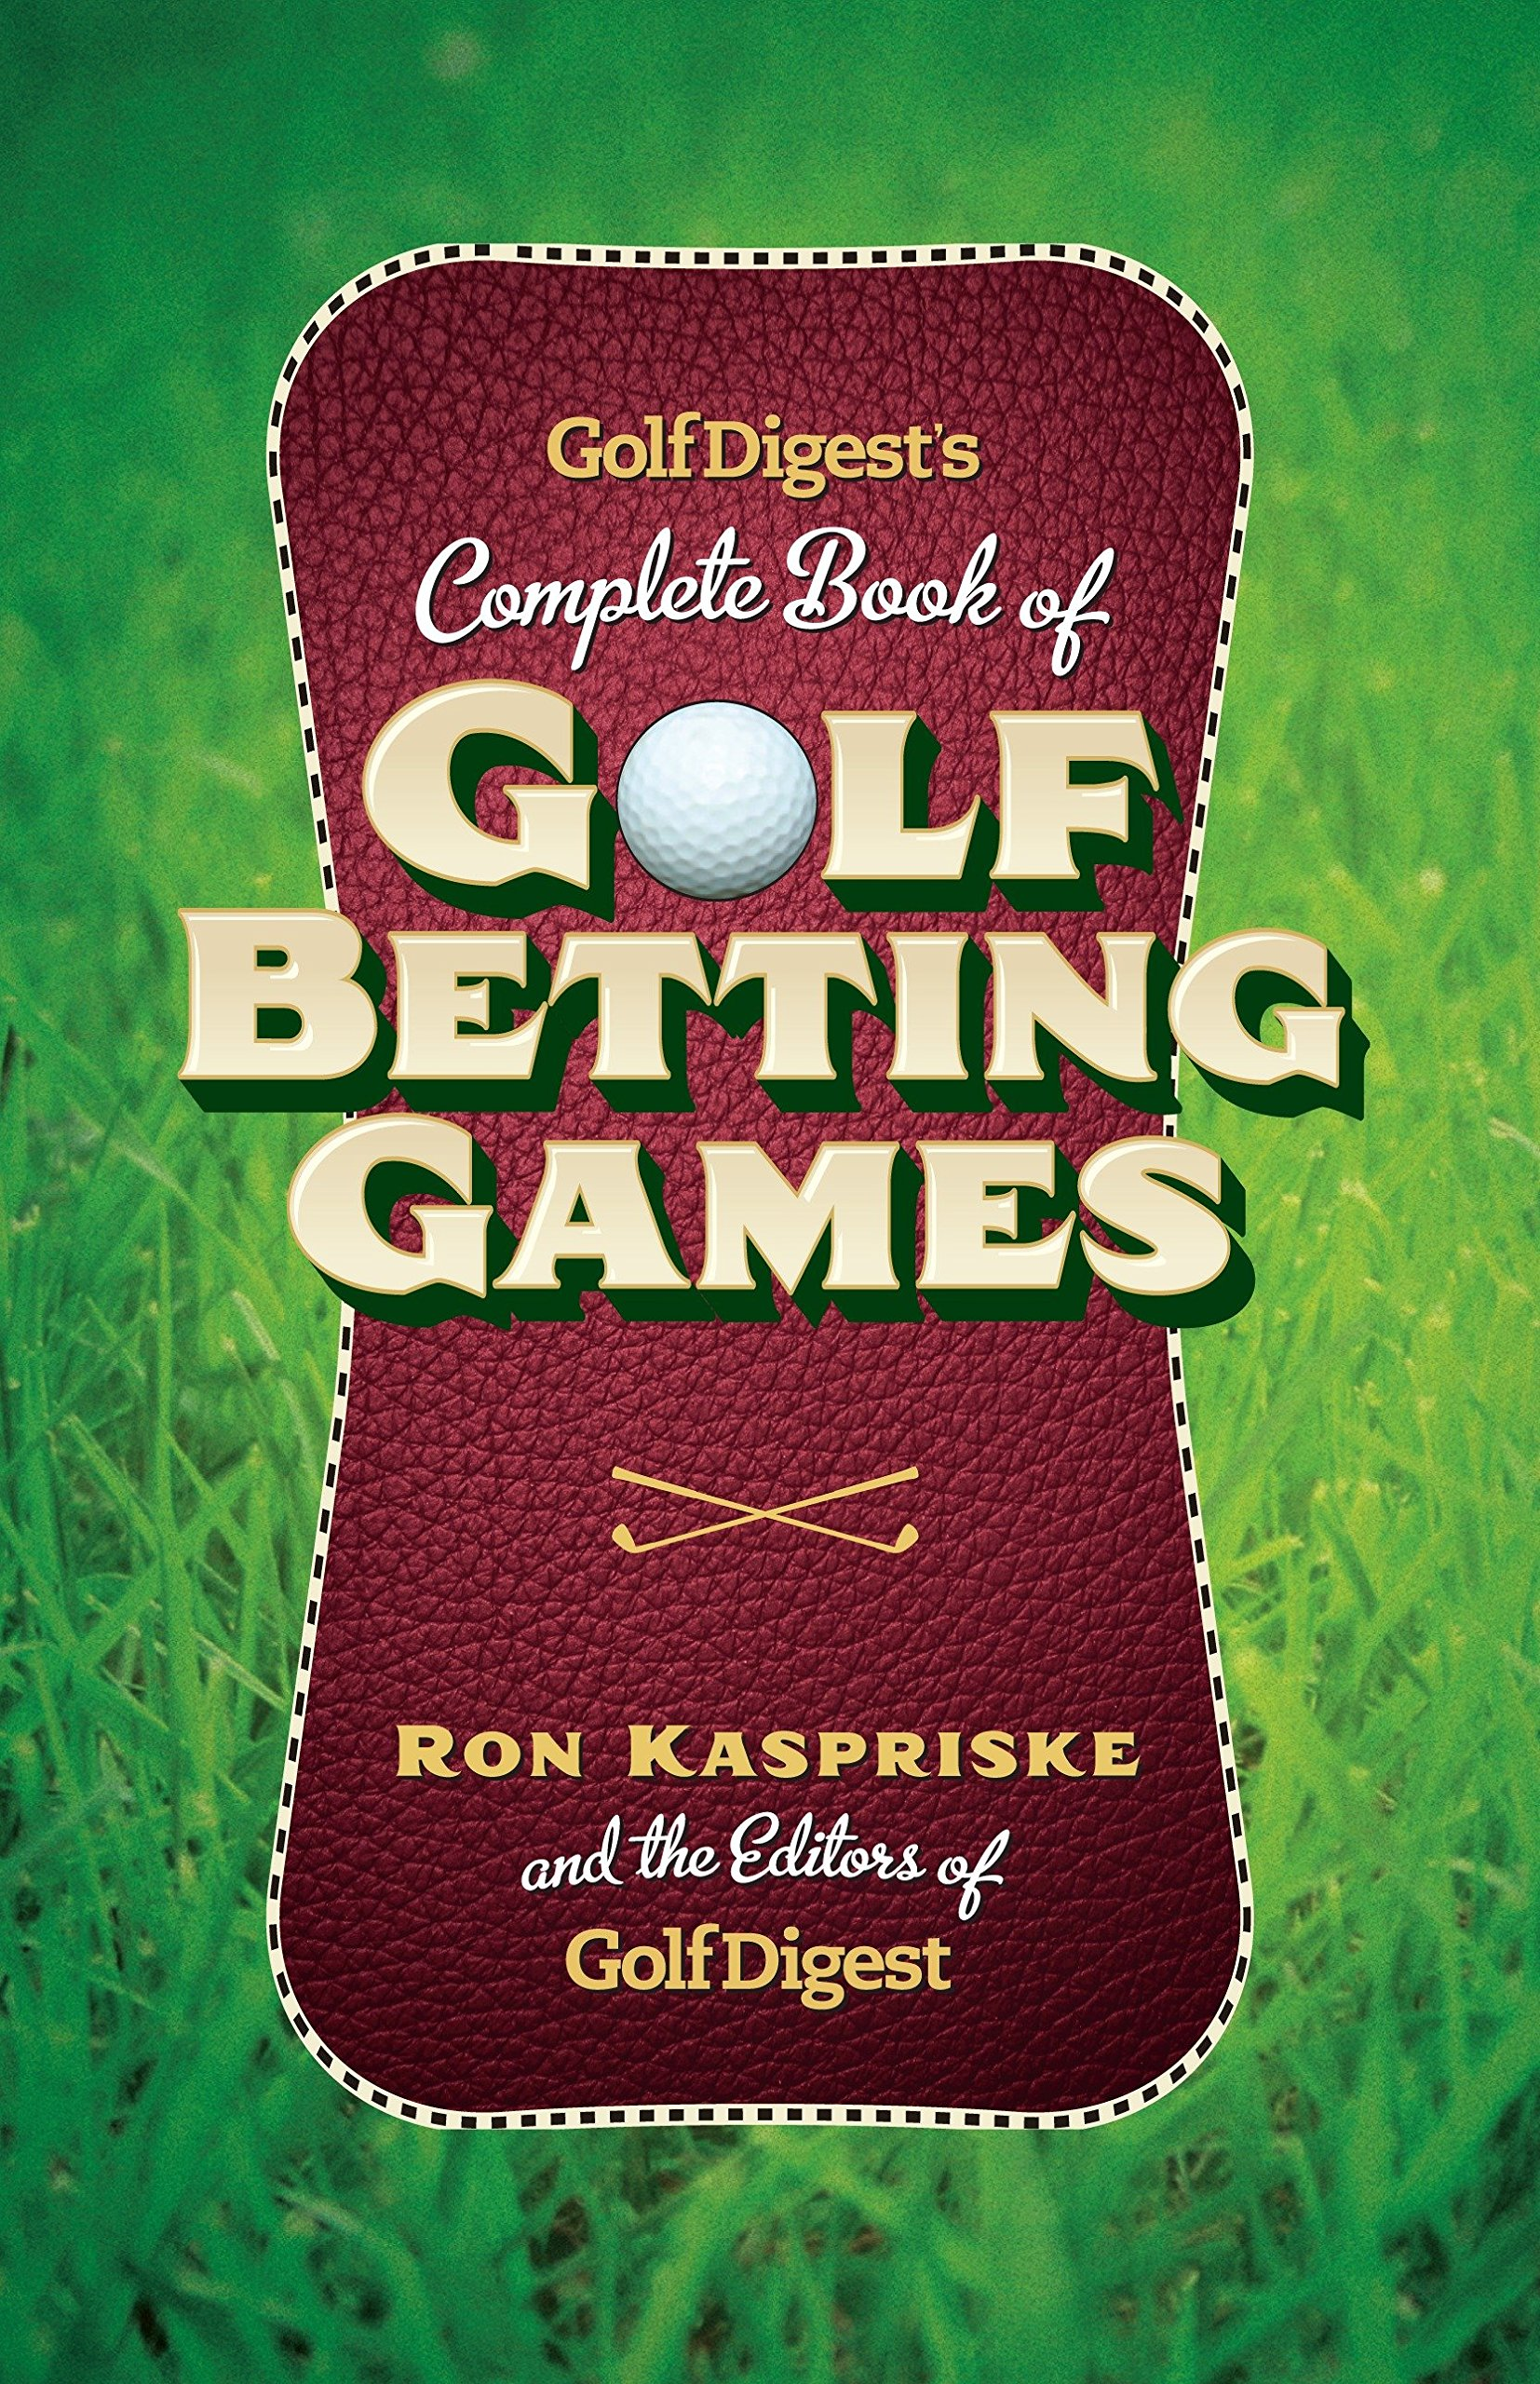 Various golf betting games snake how to bet on market volatility